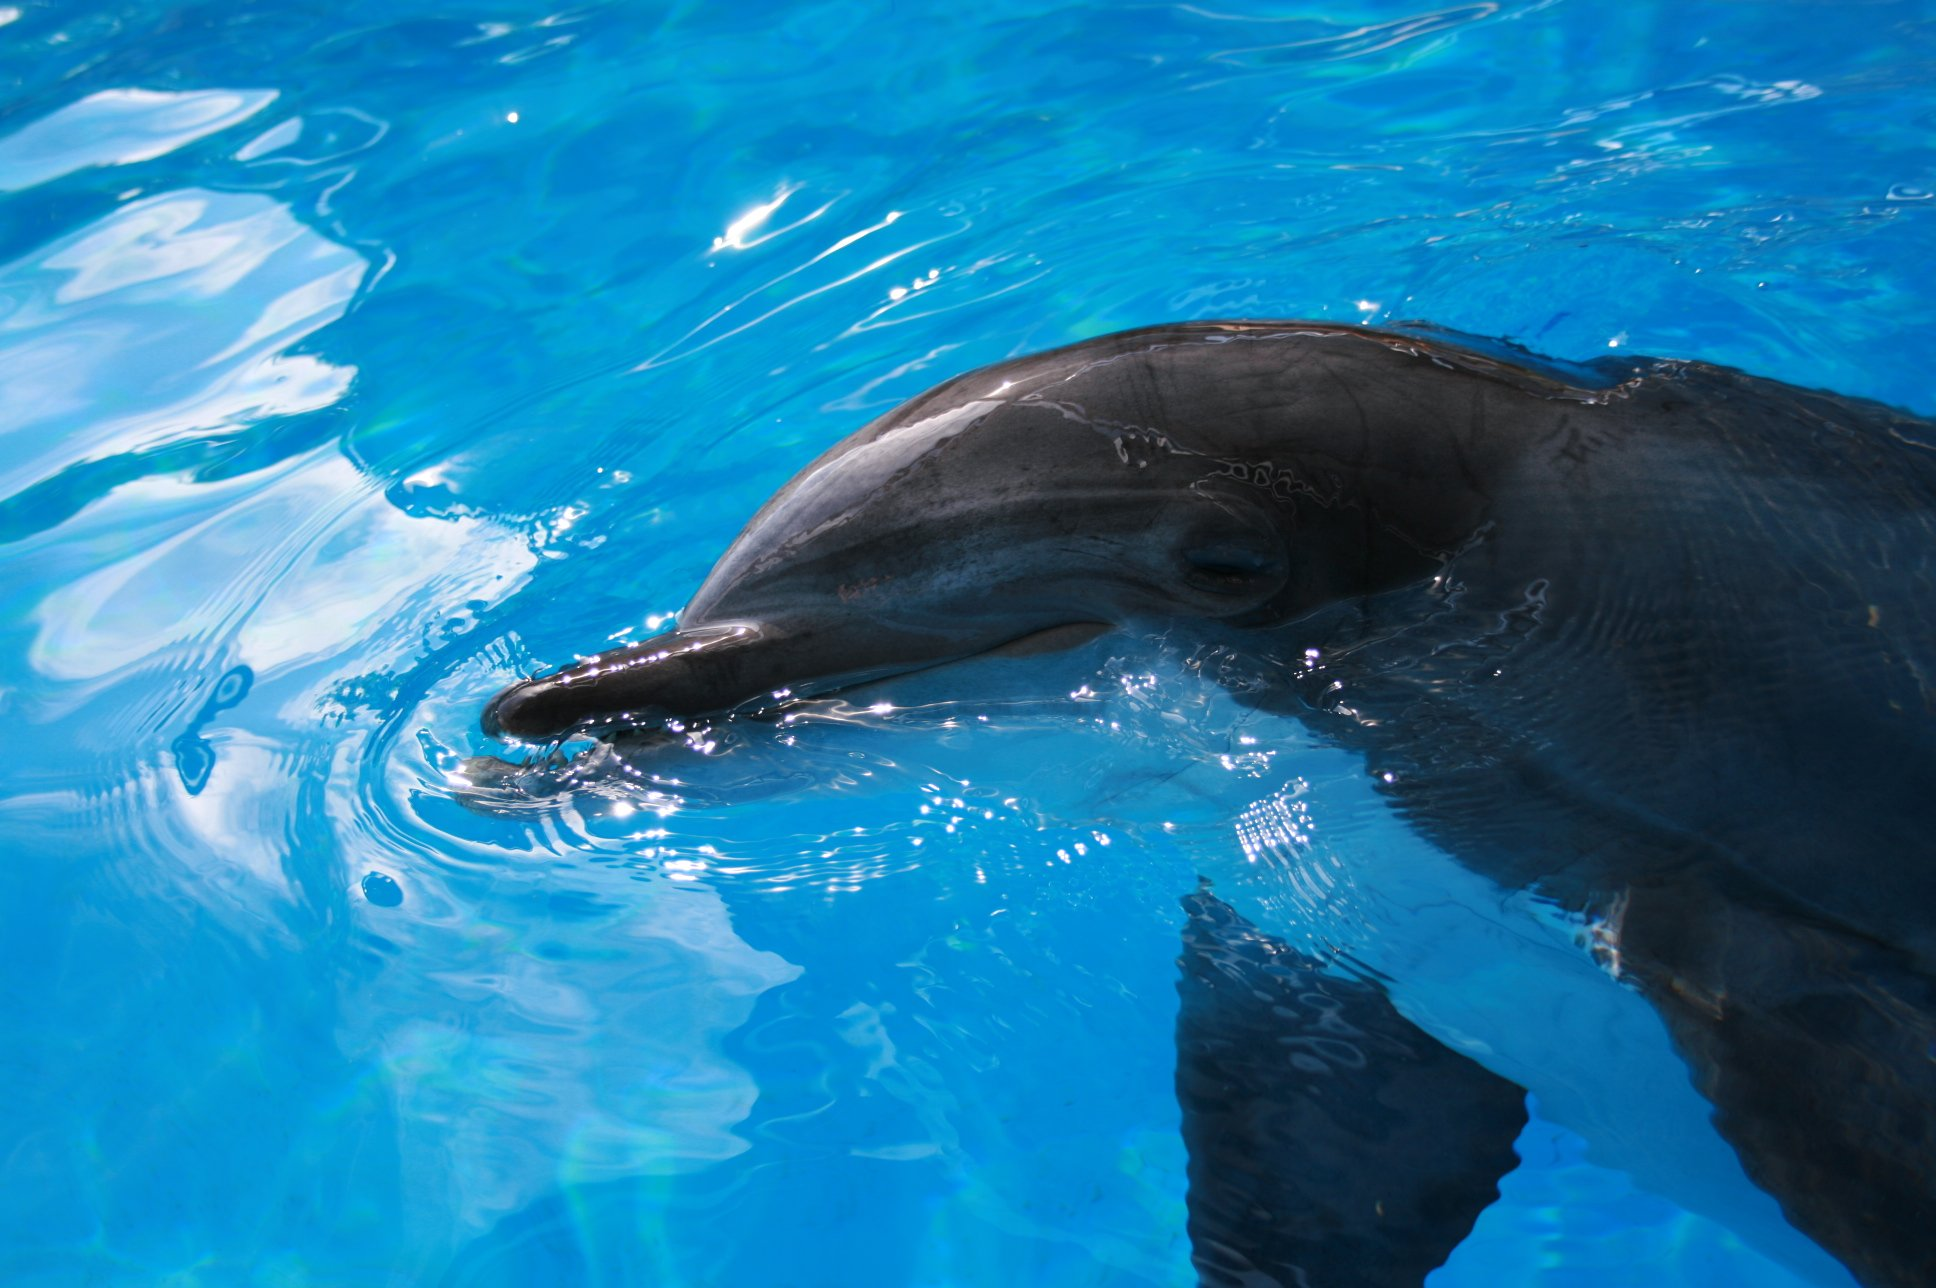 More dolphin pictures below